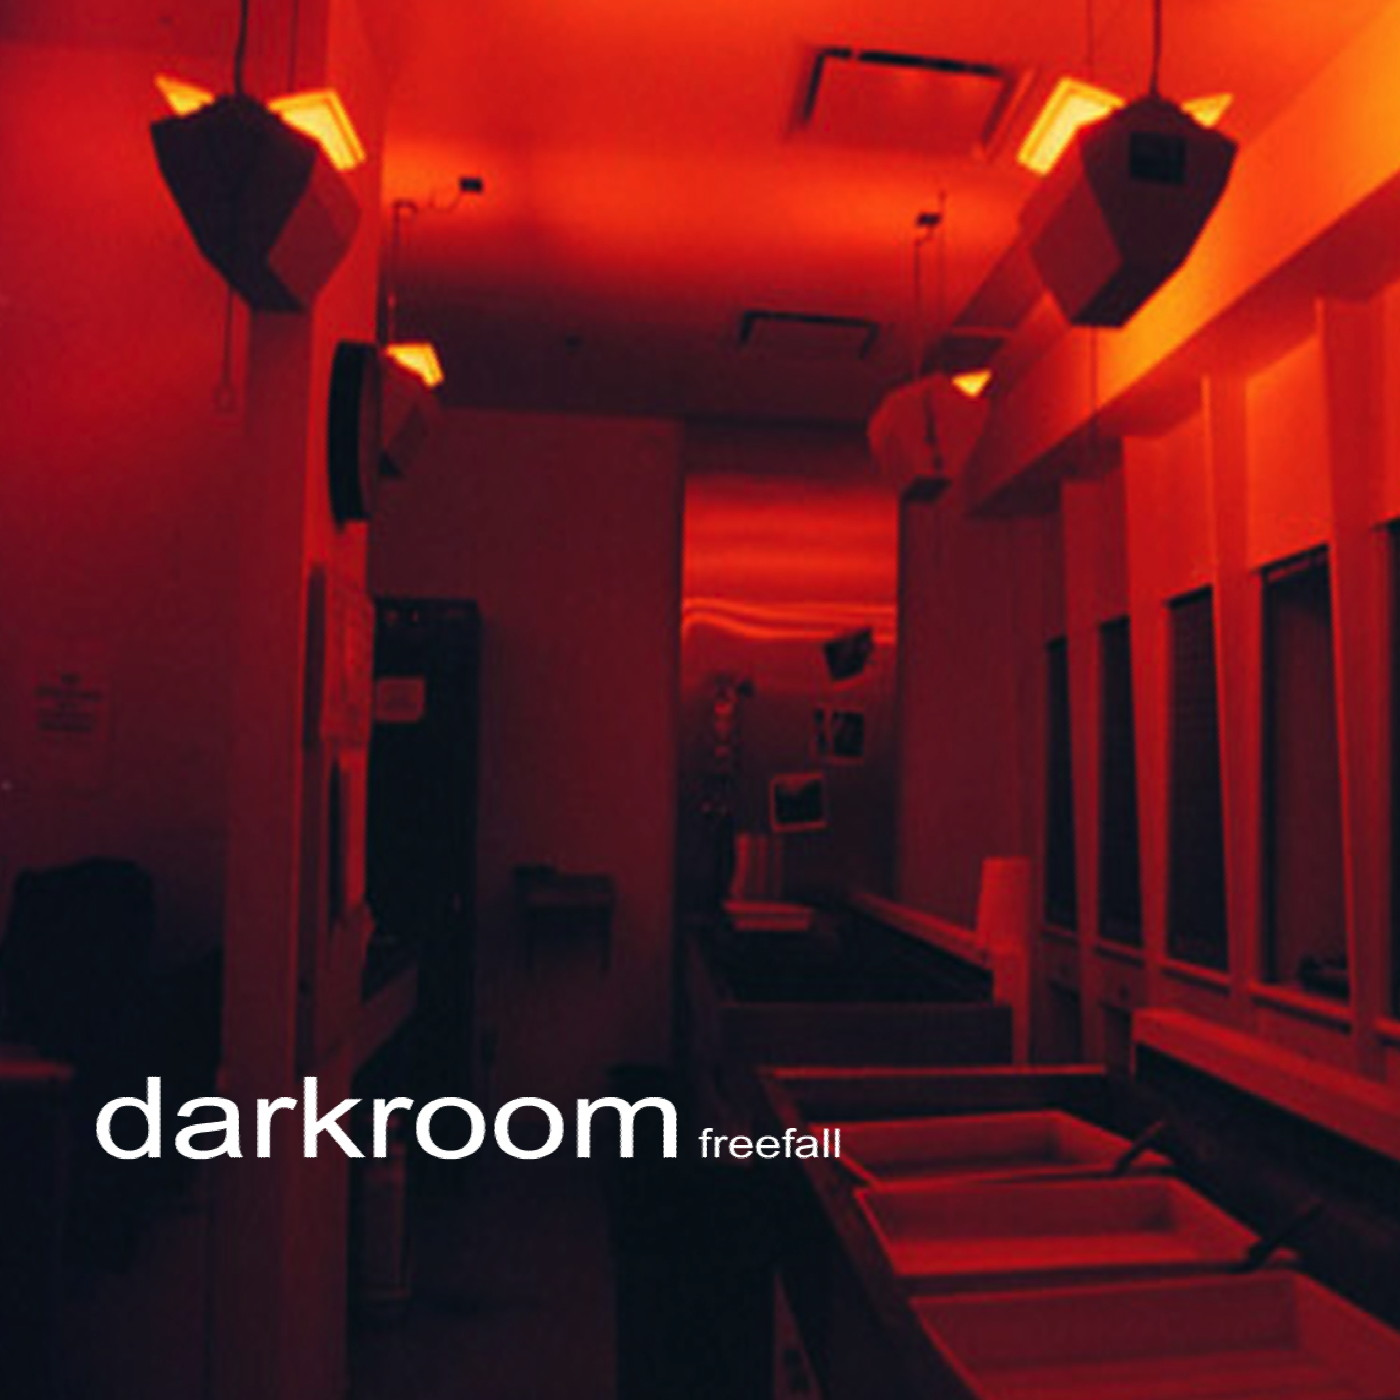 Darkroom ambient podcast - free music from ambient/avant-garde improvisers Darkroom